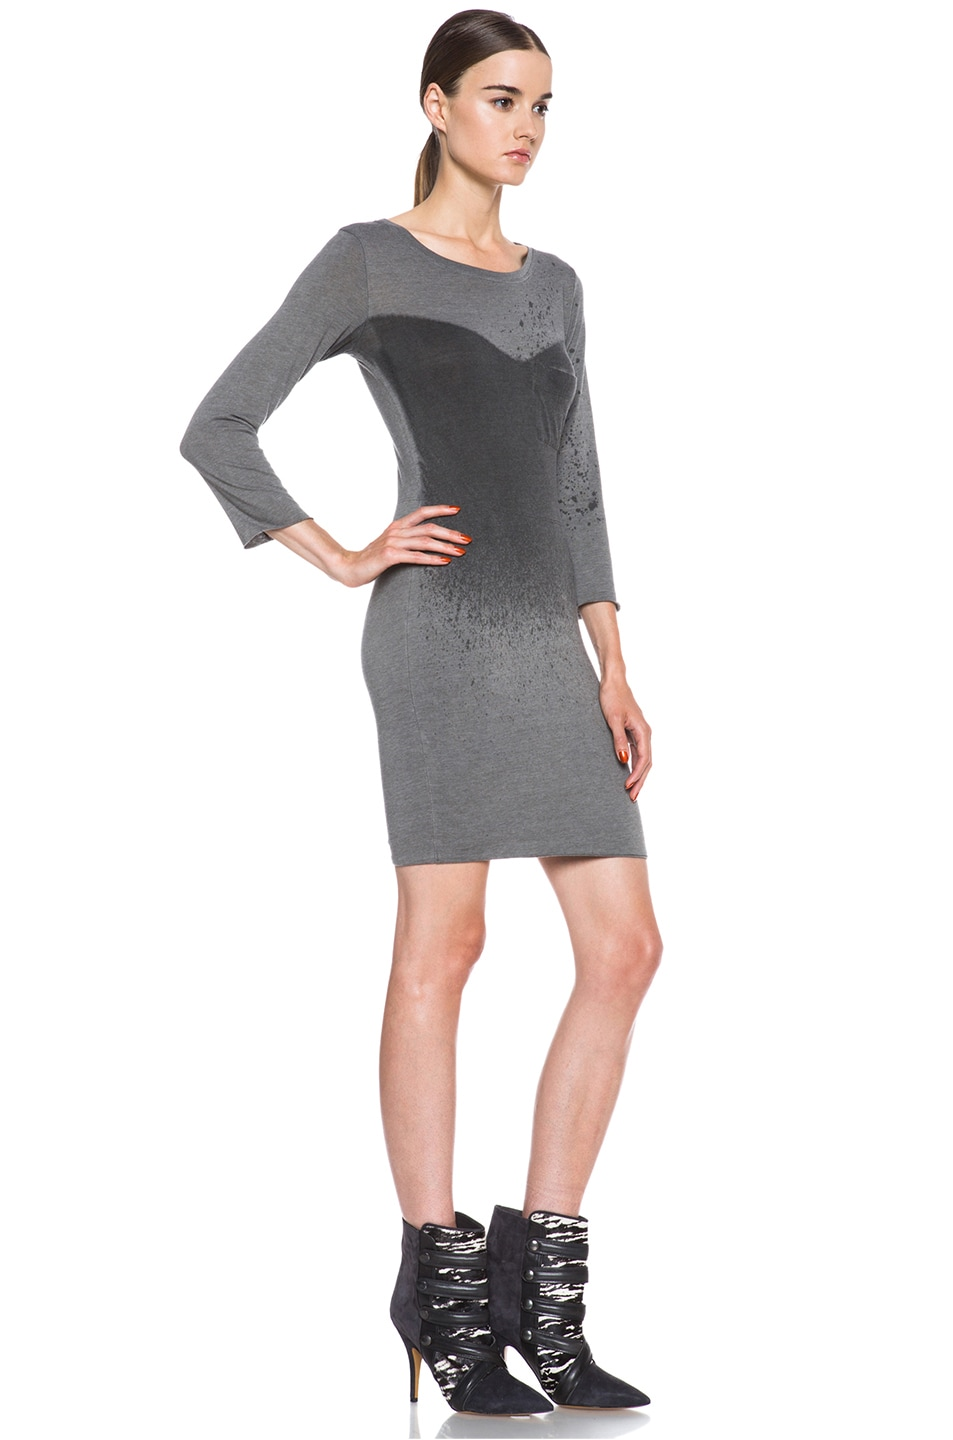 Image 3 of Raquel Allegra Deconstructed Jersey Dress in Stardust Ash Grey